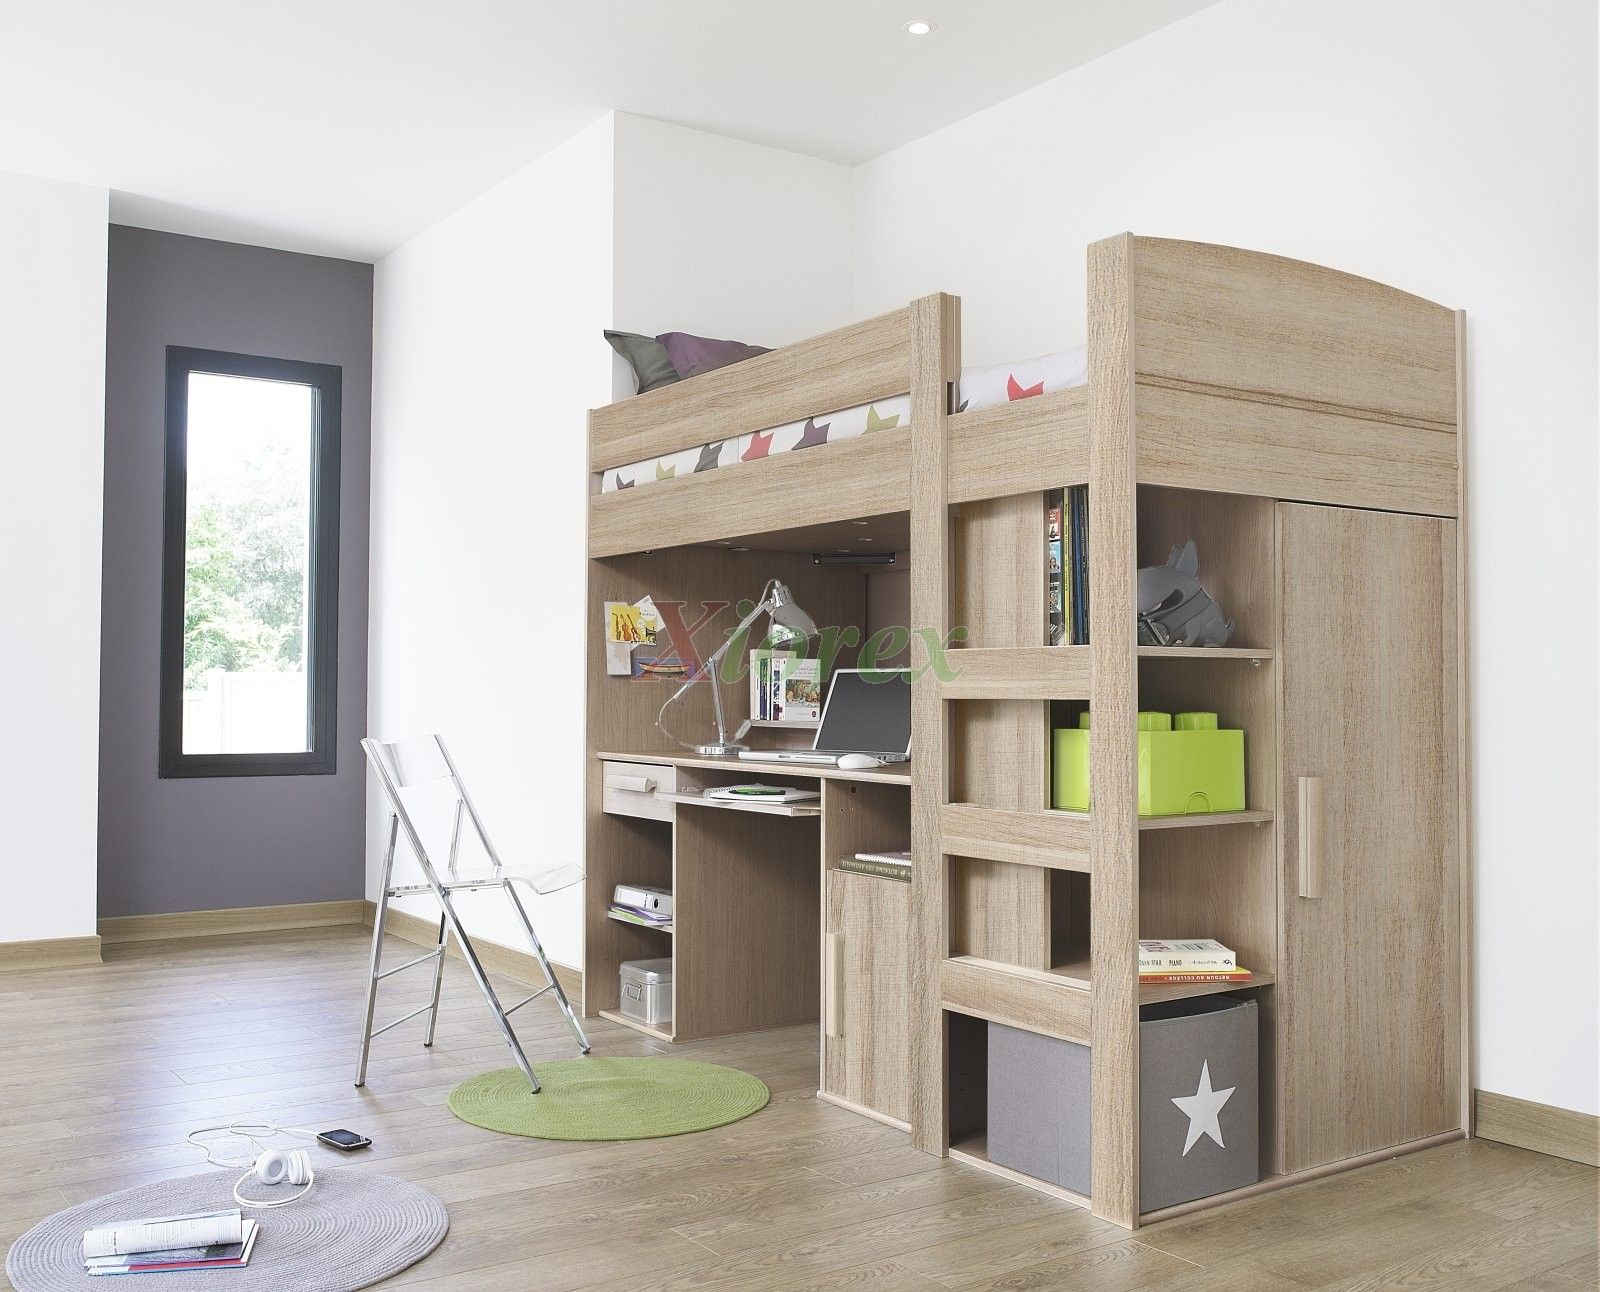 Grey loft bed with desk  Montana Loft Beds with Desk and Closet Underneath are Gami brand